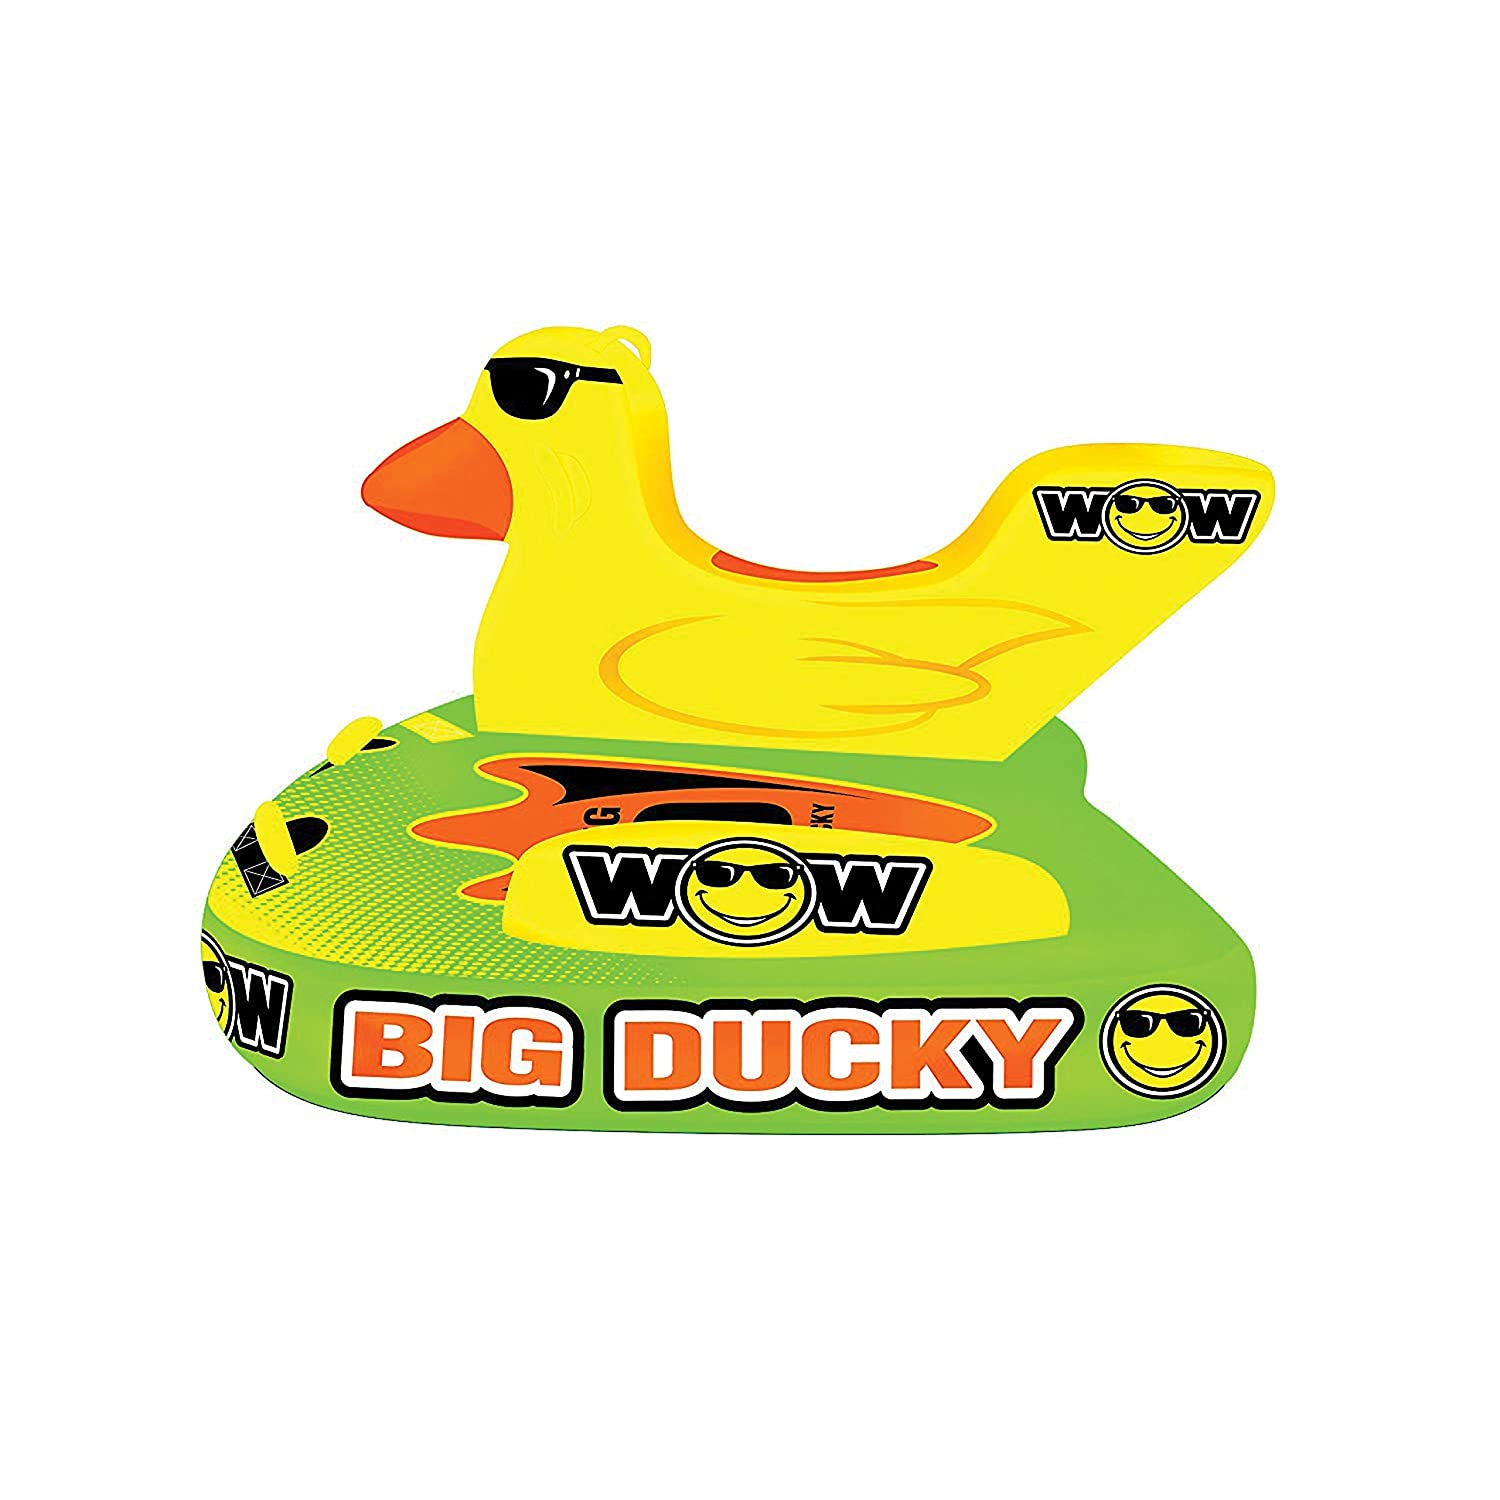 Wow World Of Watersports Big Ducky 1 2 Or 3 Person Inflatable Towable Deck Tube For Boating